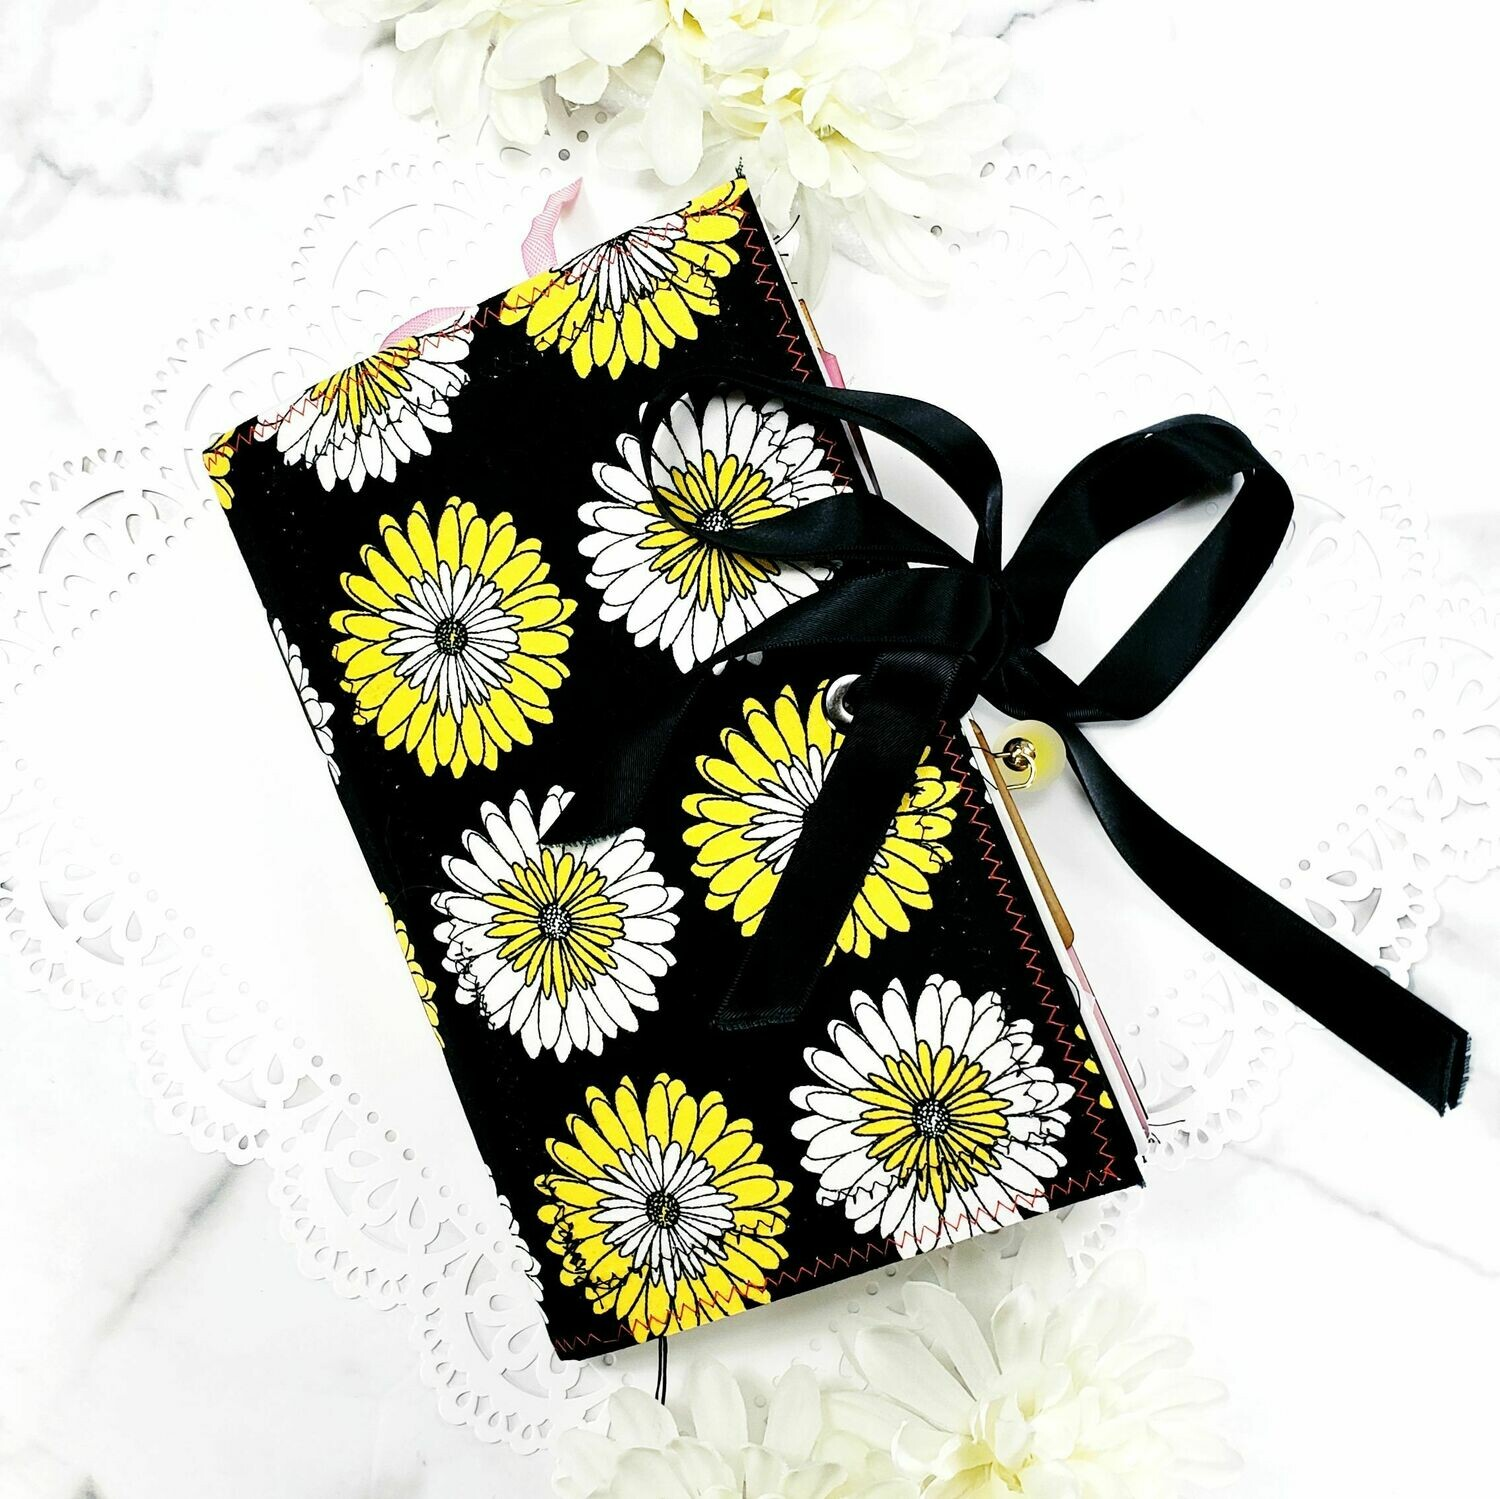 Yellow and Black Floral Fabric Cover Junk Journal